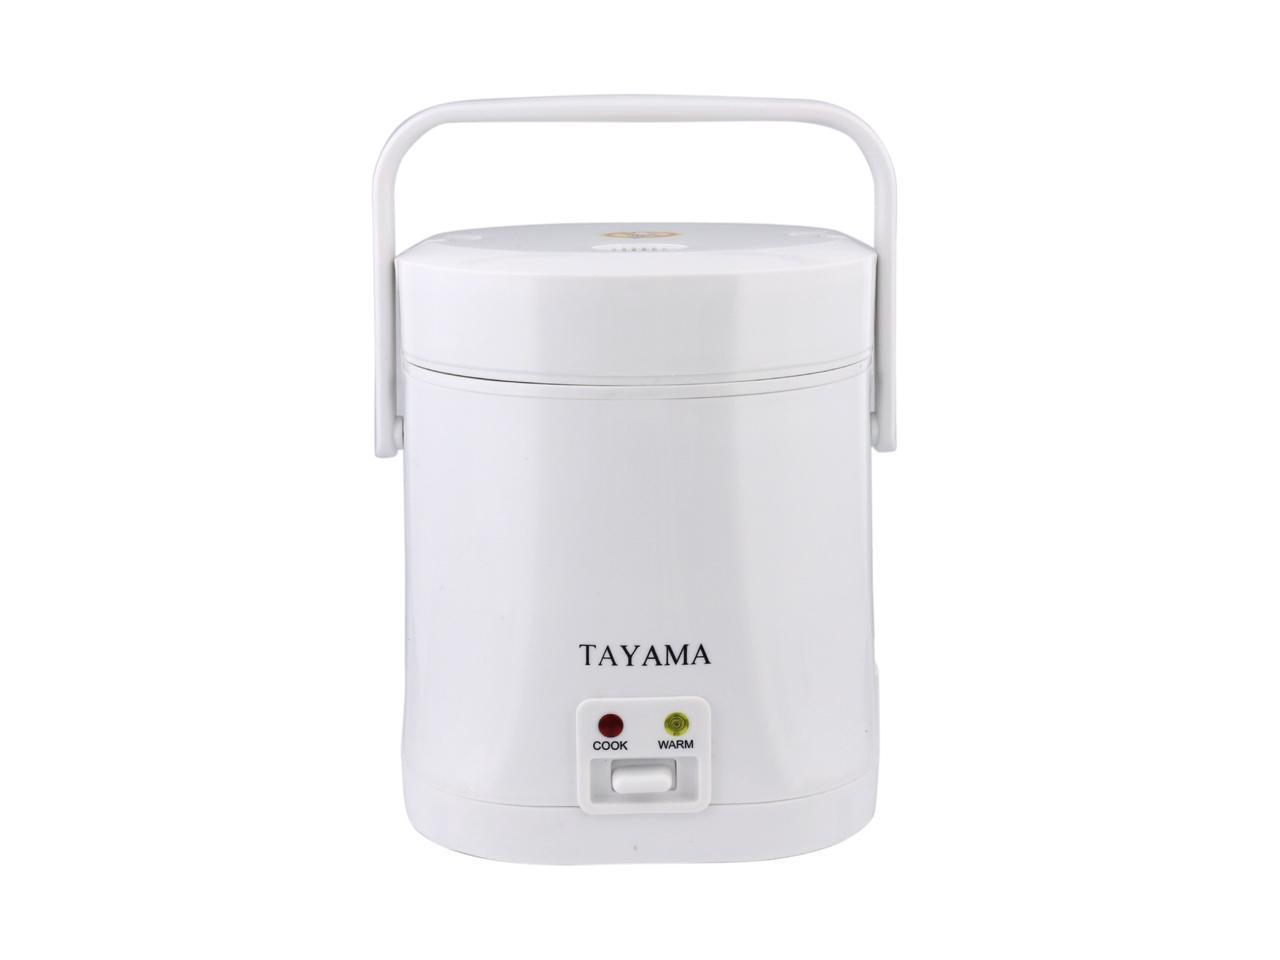 Amazon.com: Tayama TMRC-03 1.5 Cup Portable Mini Rice